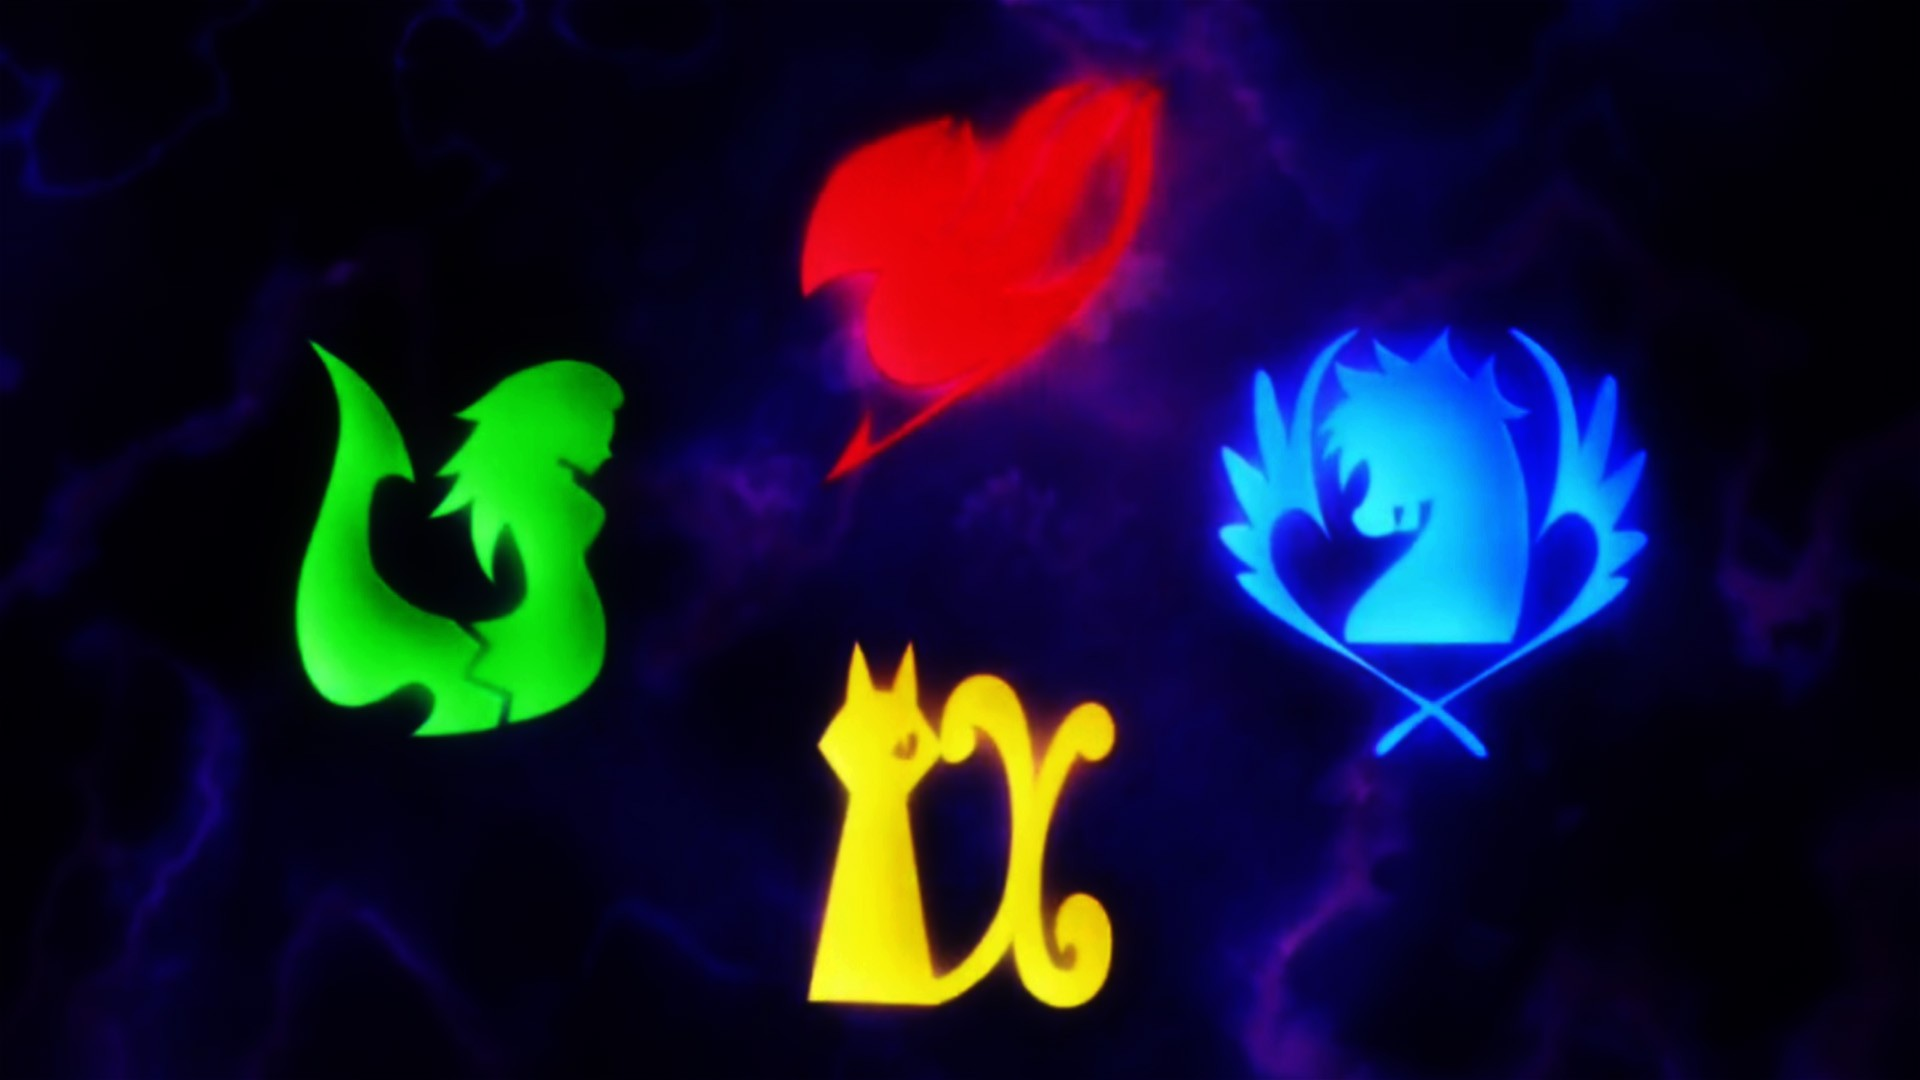 fairy tail logo wallpaper ·① download free cool full hd backgrounds